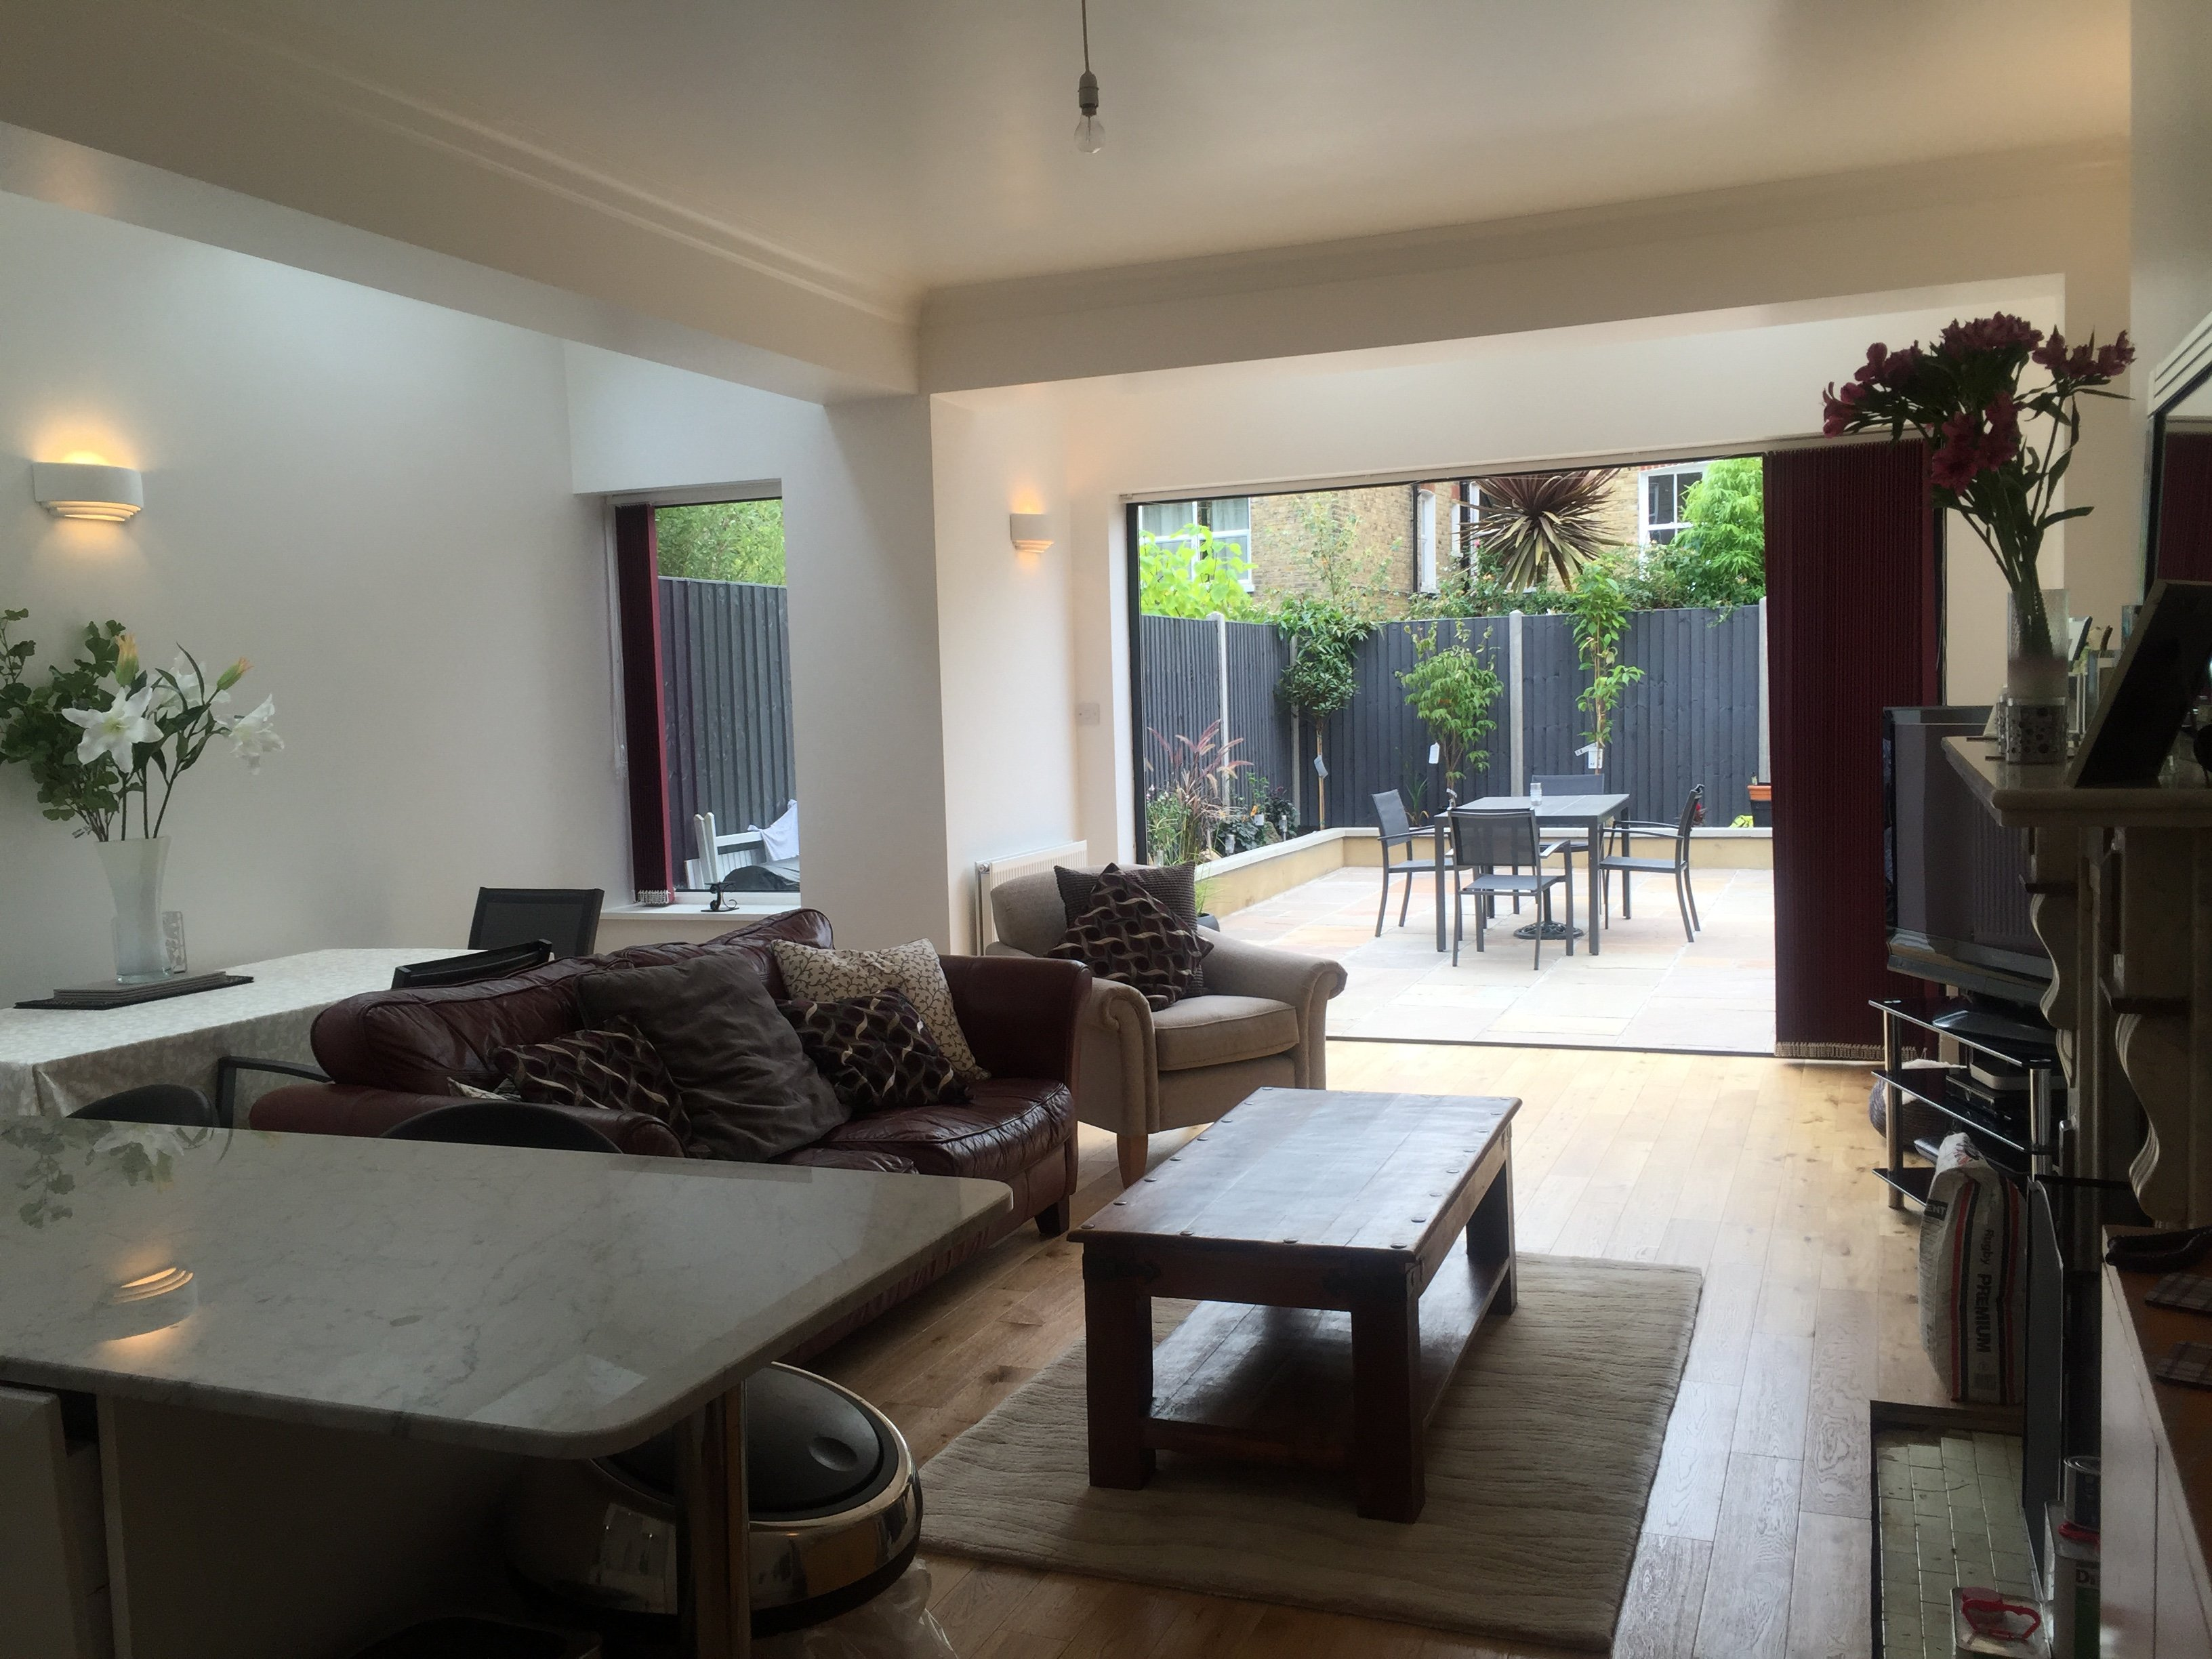 living room that opens into a outdoor sitting area